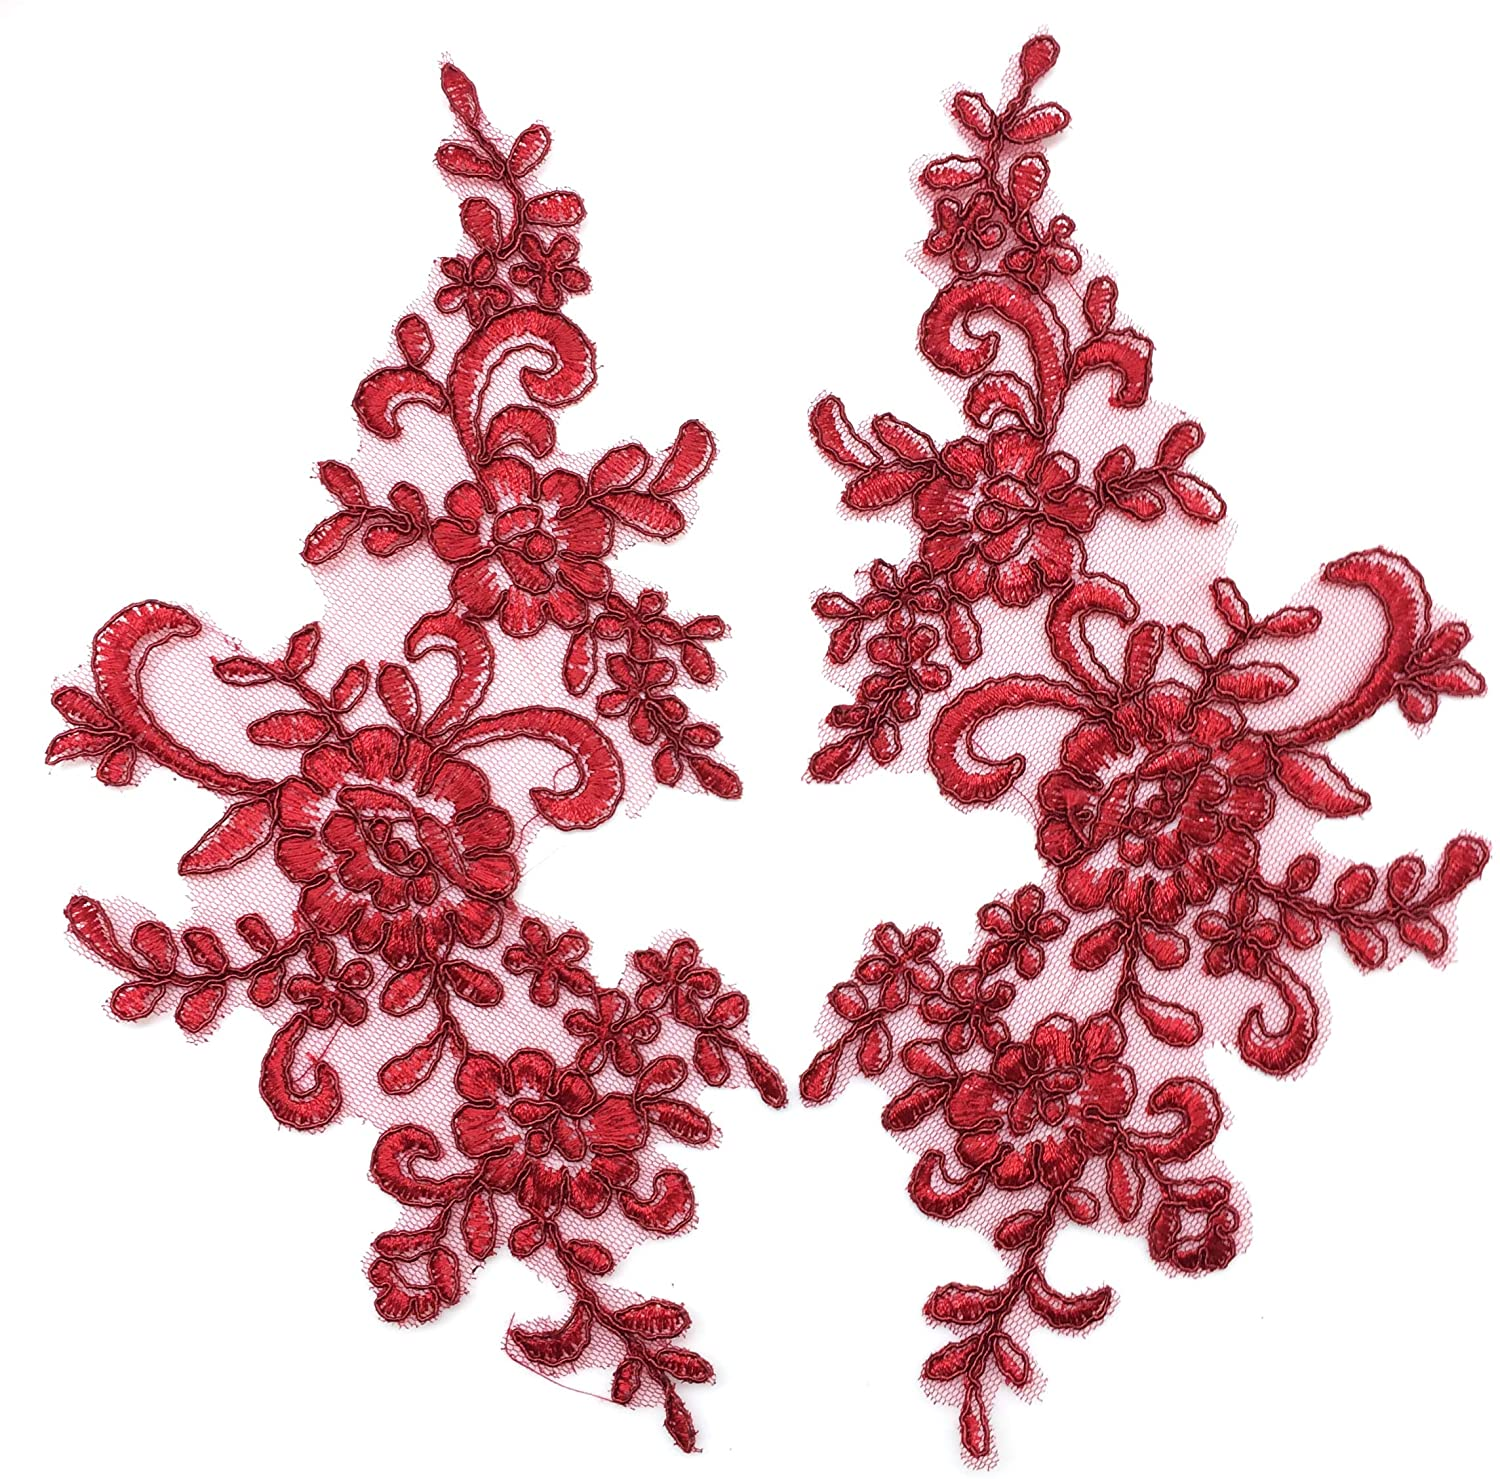 PEPPERLONELY 1 Pair Fine Lace Fabric Patches Embroidered Trim Applique Decor Dress Decoration, Wine Red, 10 X 6 Inch